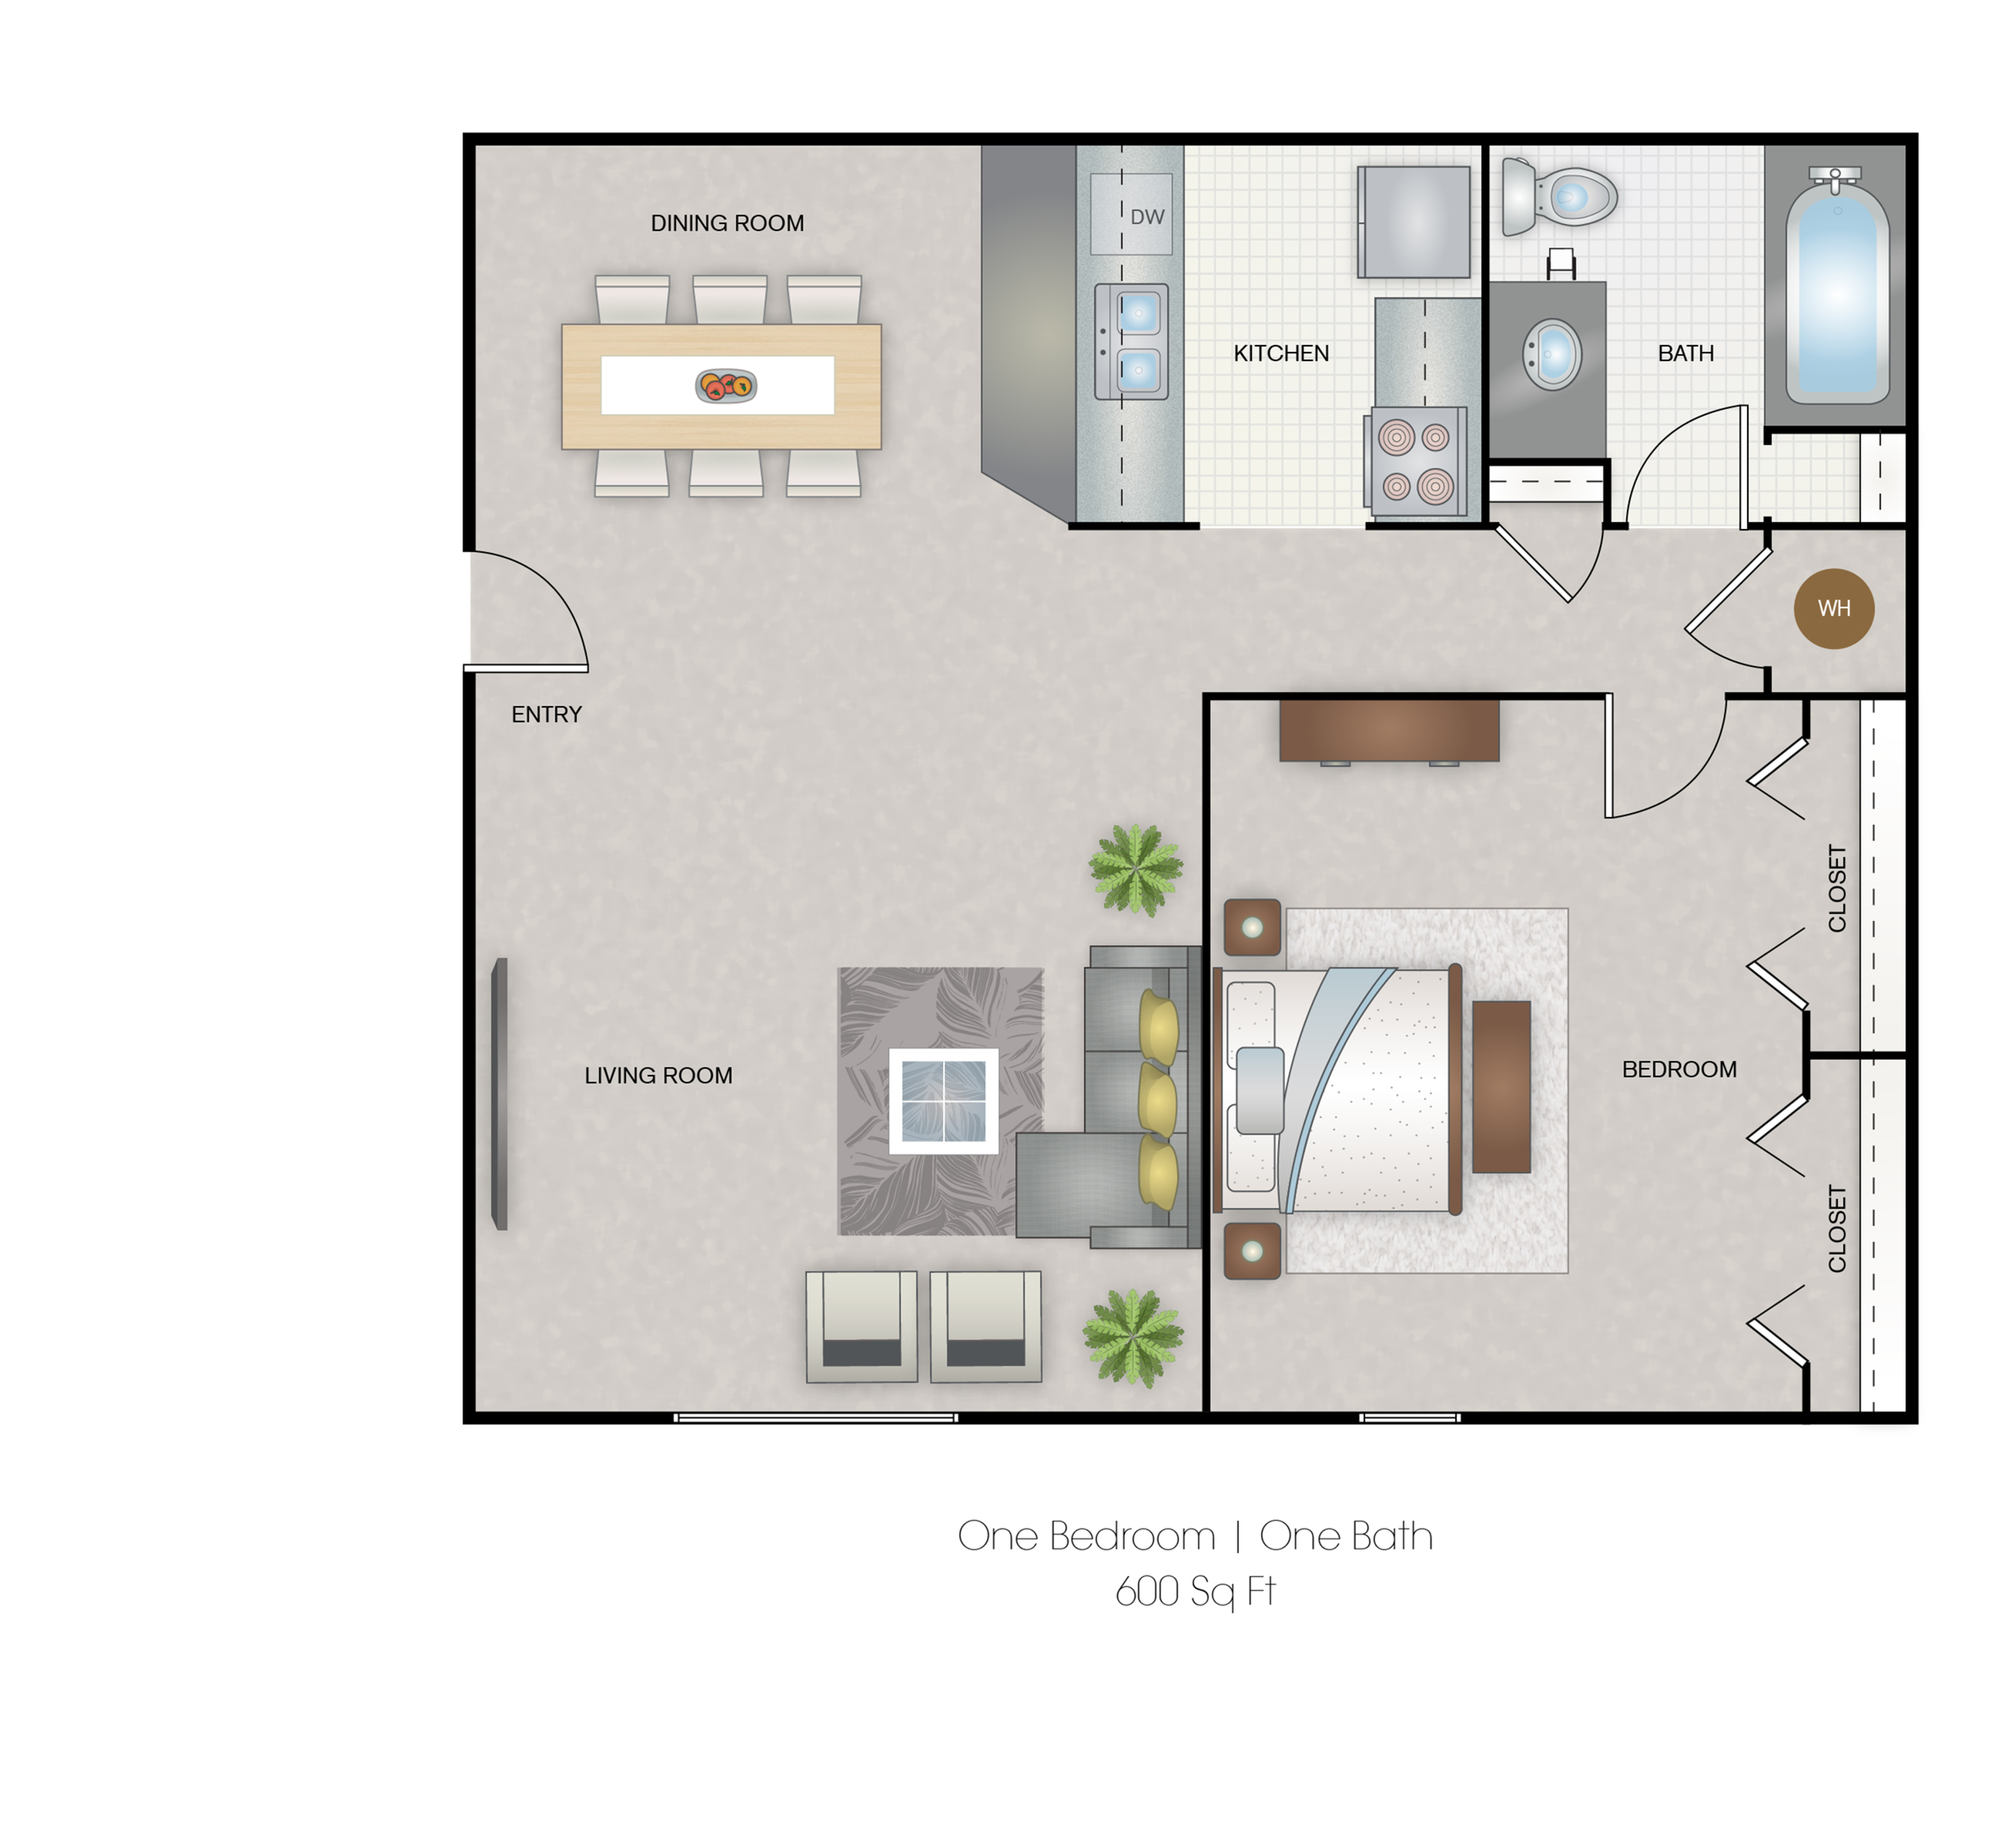 Large one bedroom with Washer/Dryer